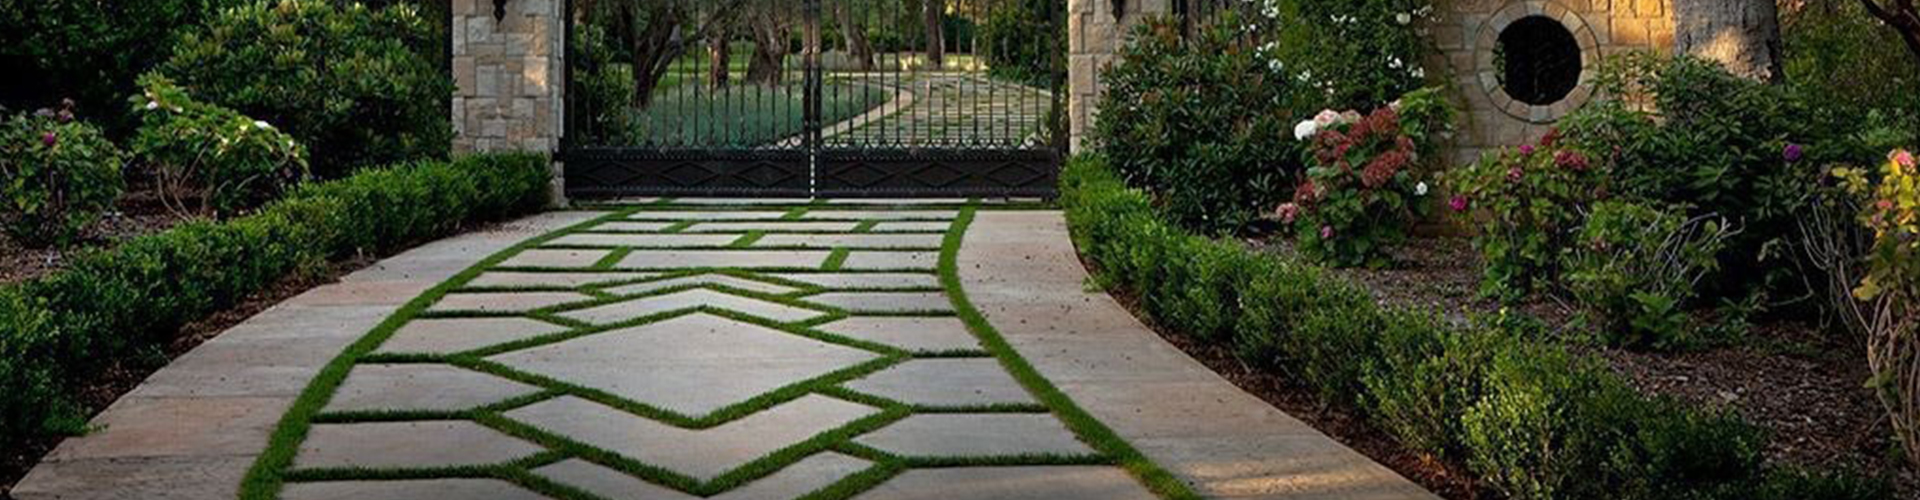 Luxurious Driveway Designs